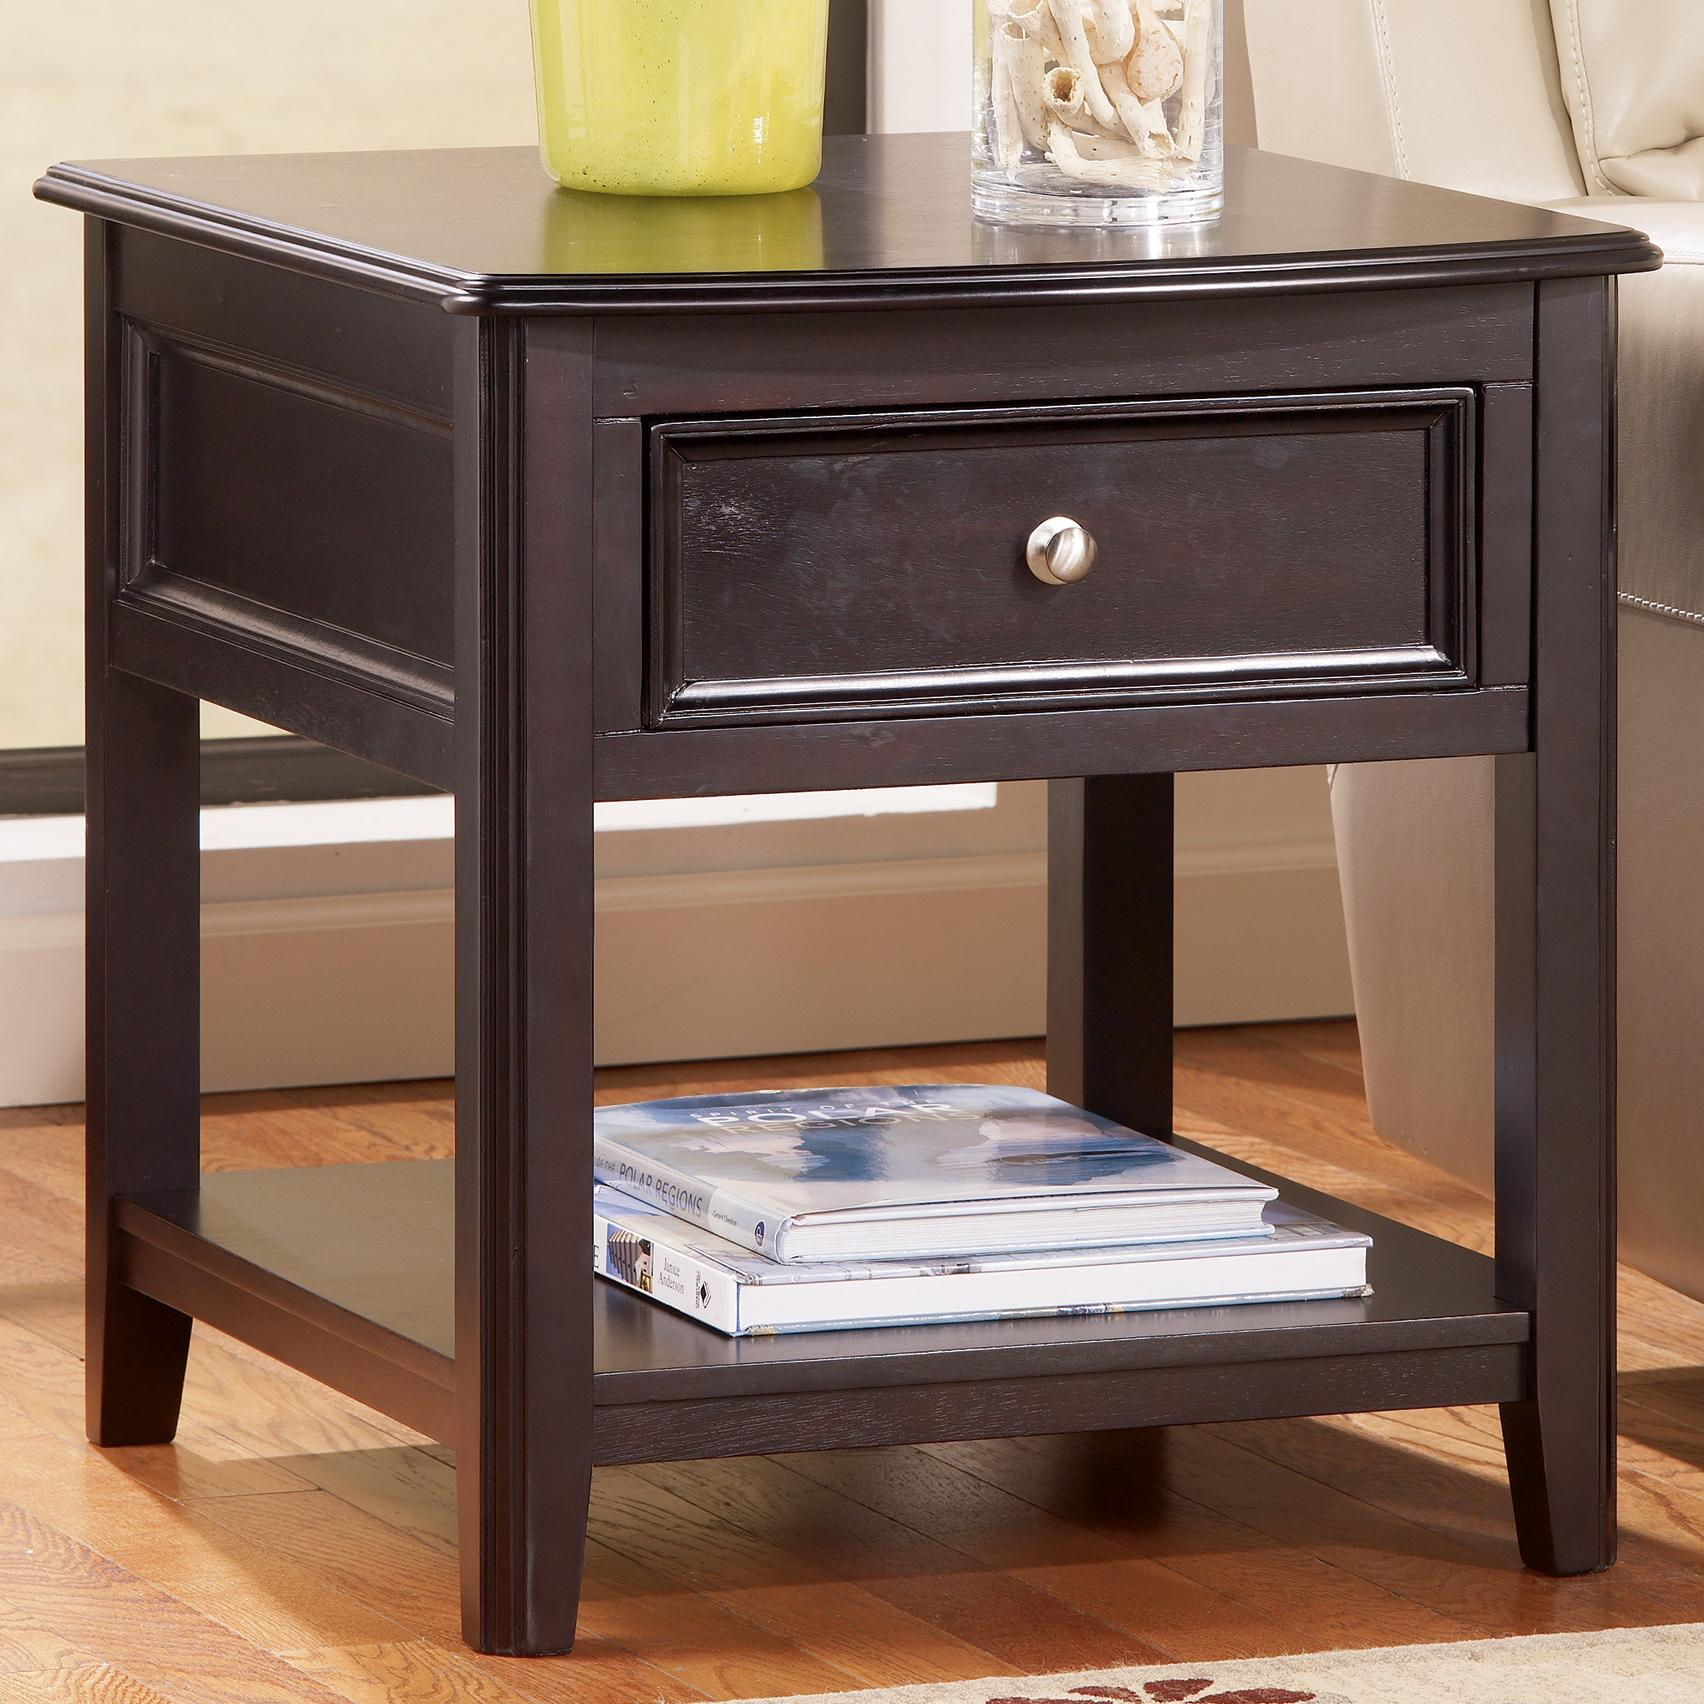 furniture high quality and elegant end tables with drawers coffee table skinny bedside target tall storage slim side craftsman style cherry tier accent pier outdoor modern barn